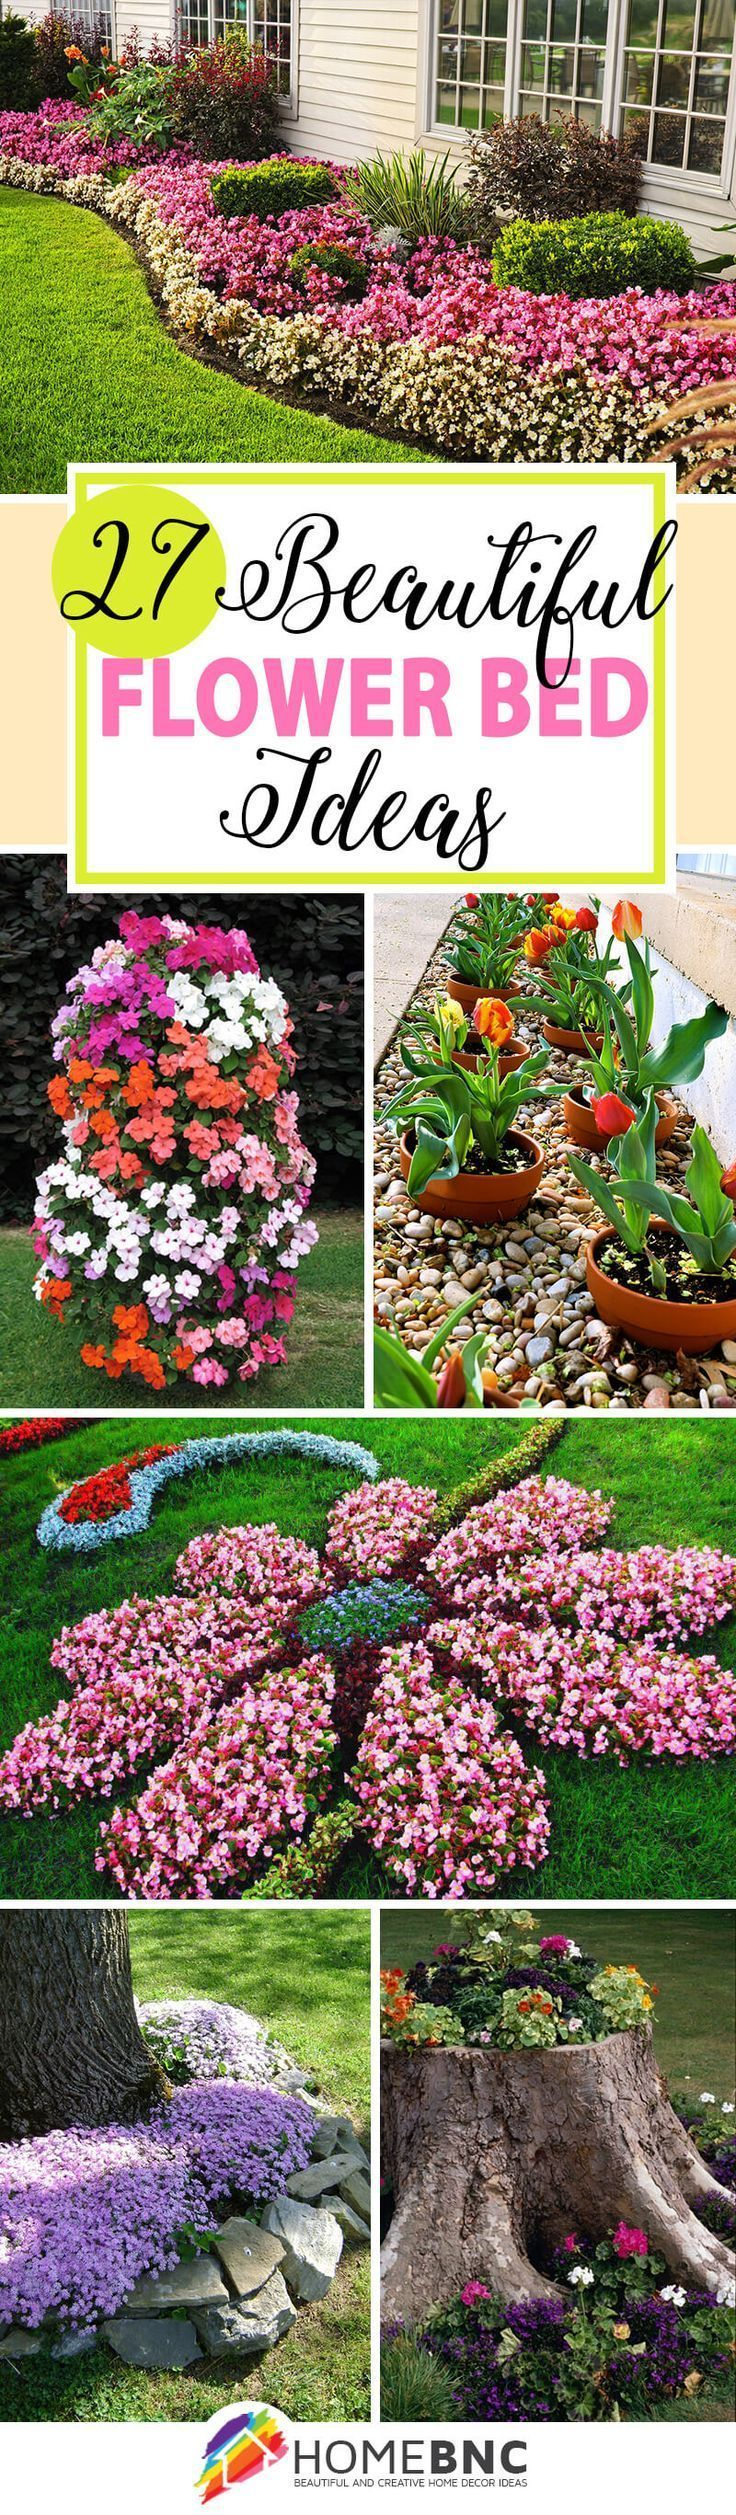 Landscaping flower beds - 27 Gorgeous And Creative Flower Bed Ideas To Try